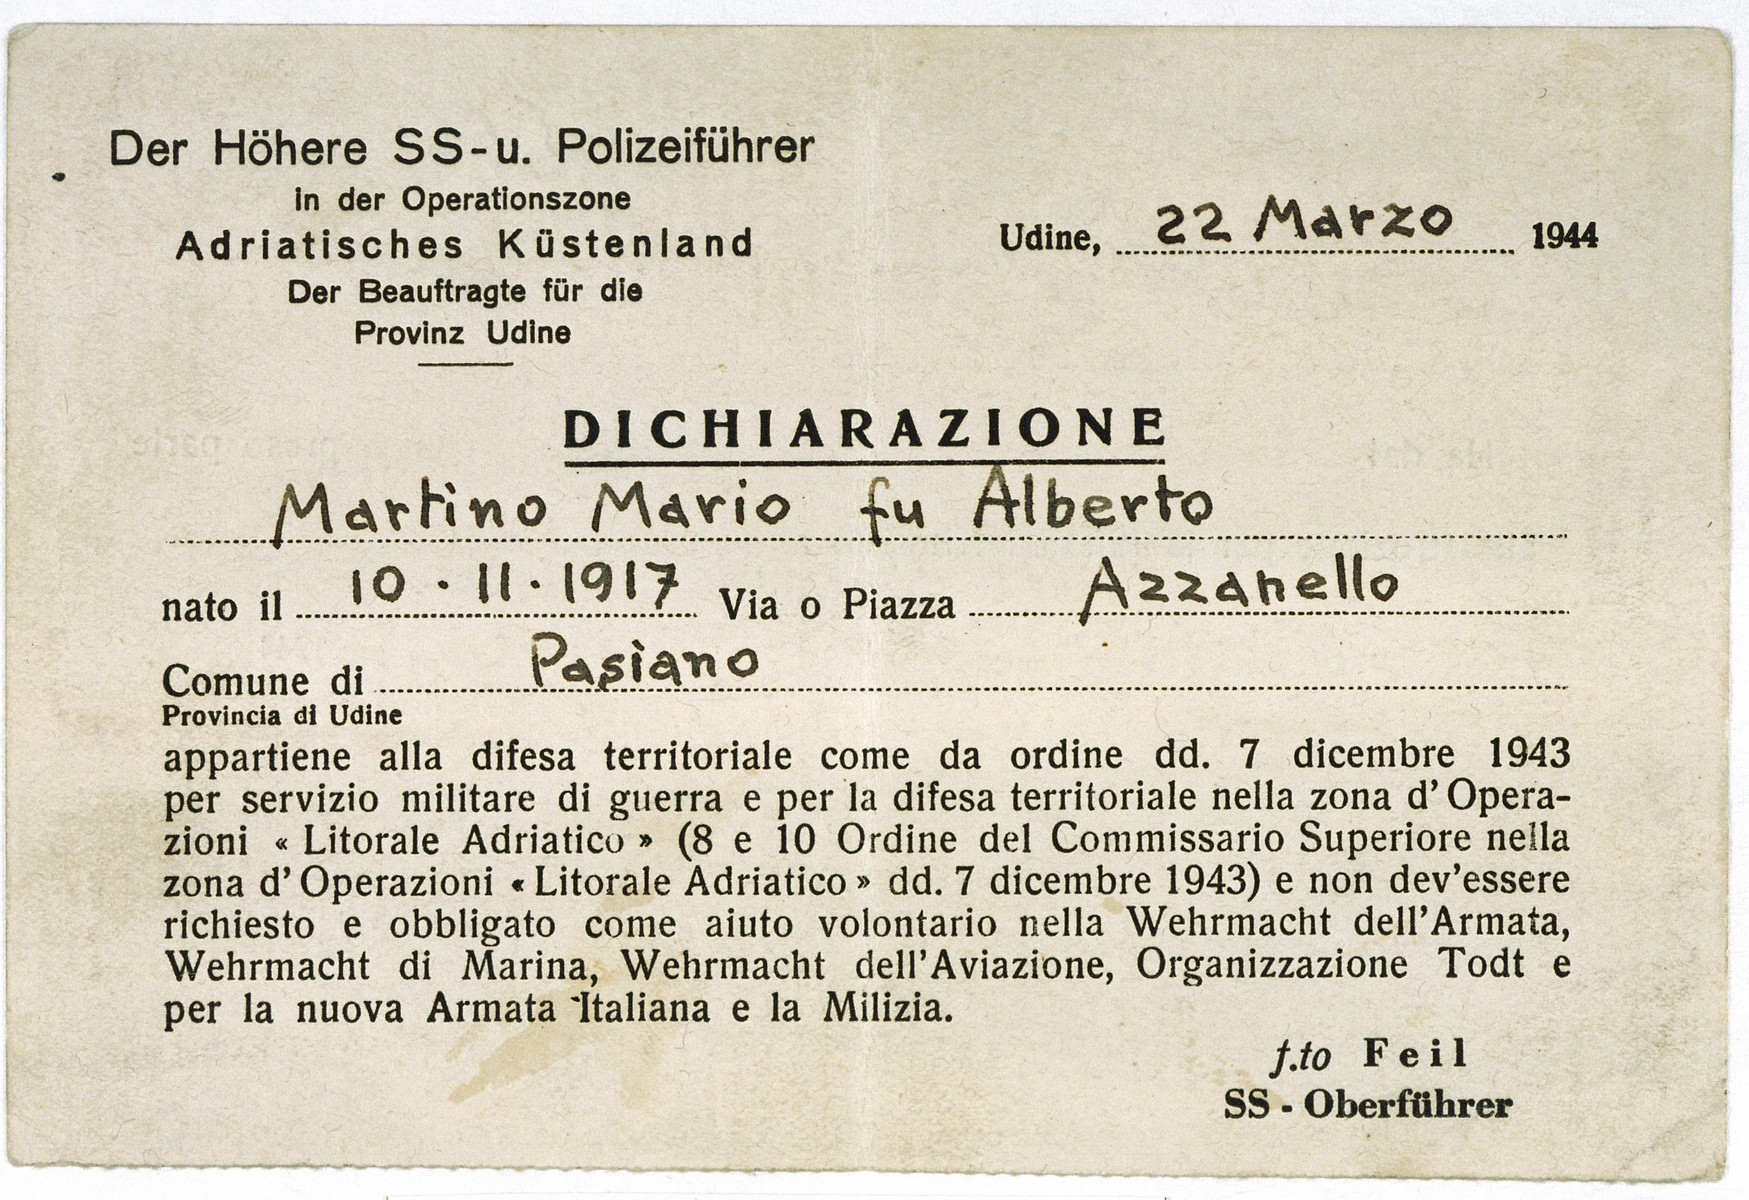 SS document issued to the Italian Jew Marcello Morpugo, who was living under the alias of Mario Martino during the German occupation of Italy.  The document certified that Martino was a member of the municipal guard.